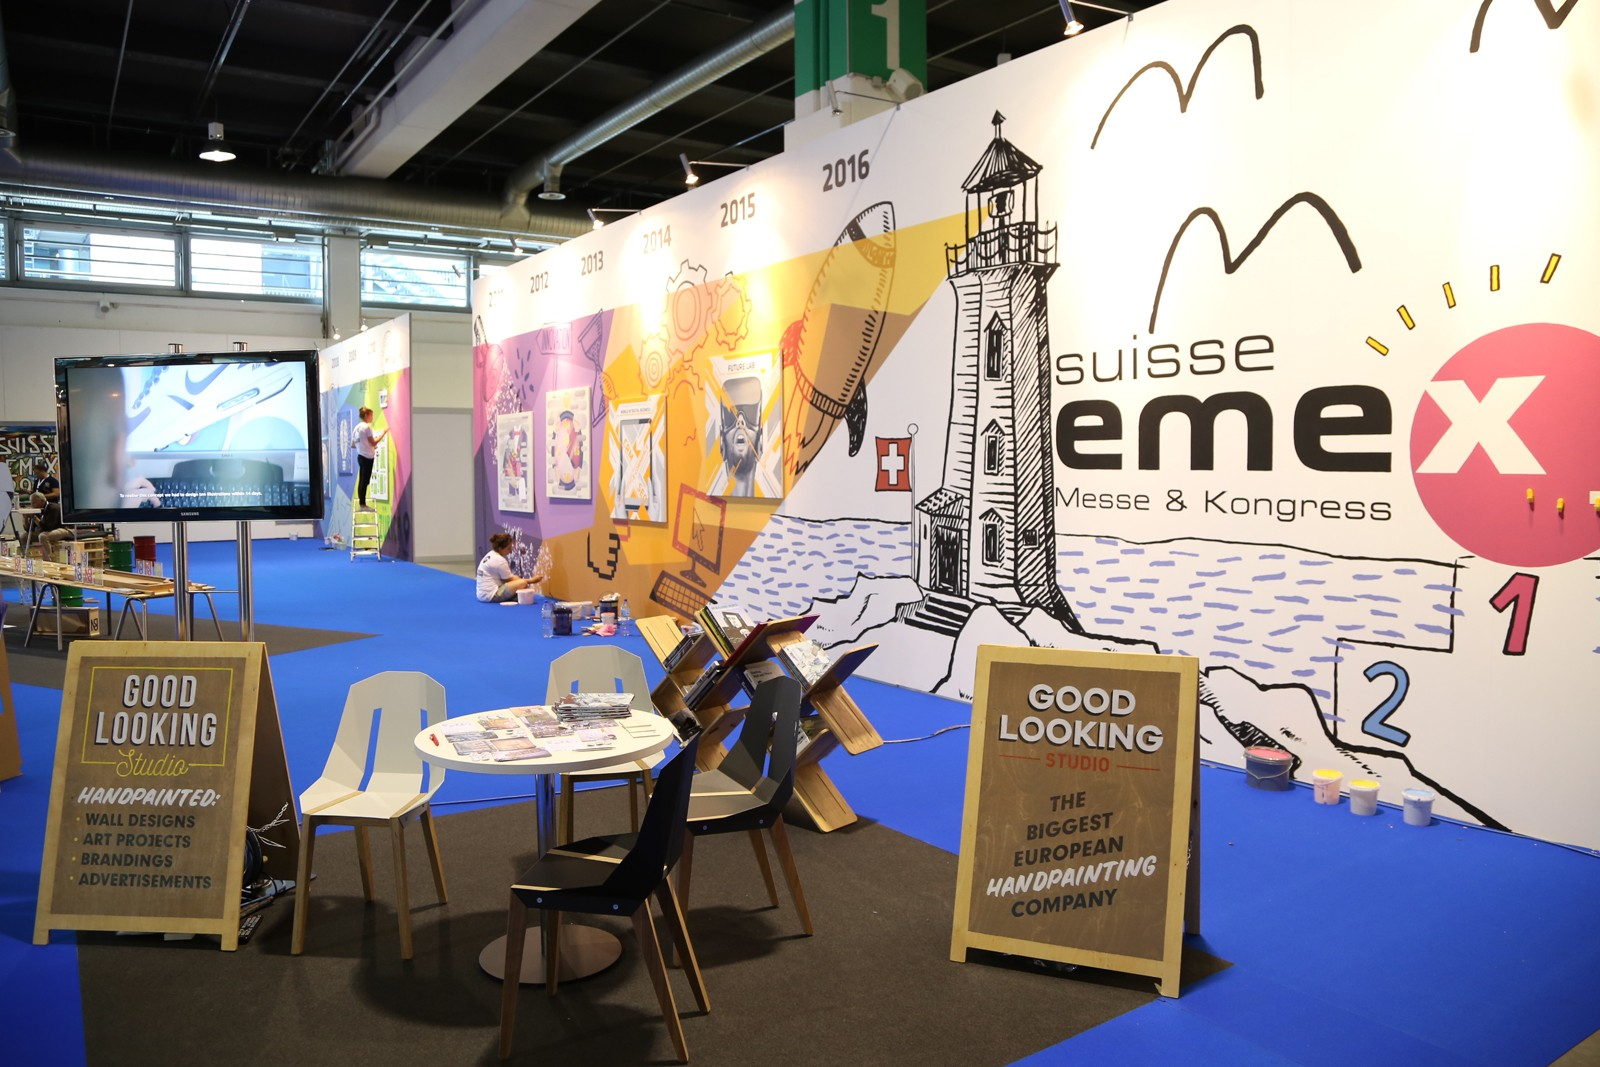 Der Stand von Good looking Studio, einer Firma für handgemalte Werbung in der Schweizer Fachmasse für Marketing, Kommunikation, Event und Promotion SuisseEMEX 2016 | SuisseEMEX | Backstage